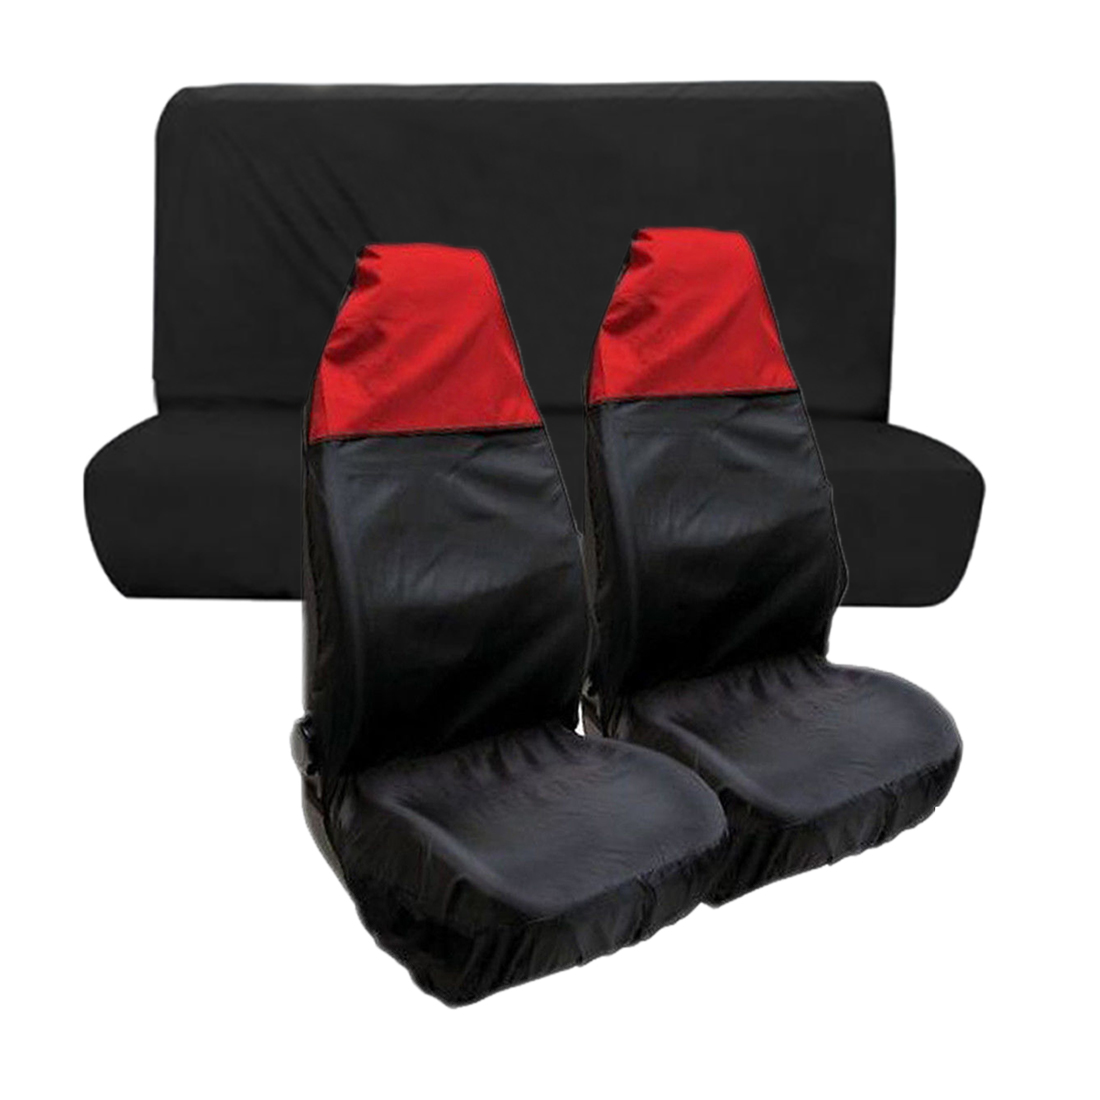 Dewtreetali Universal Front Rear Waterproof Nylon Car Seat Cover Protectors Seat Covers Water Resistant Interior Accessories